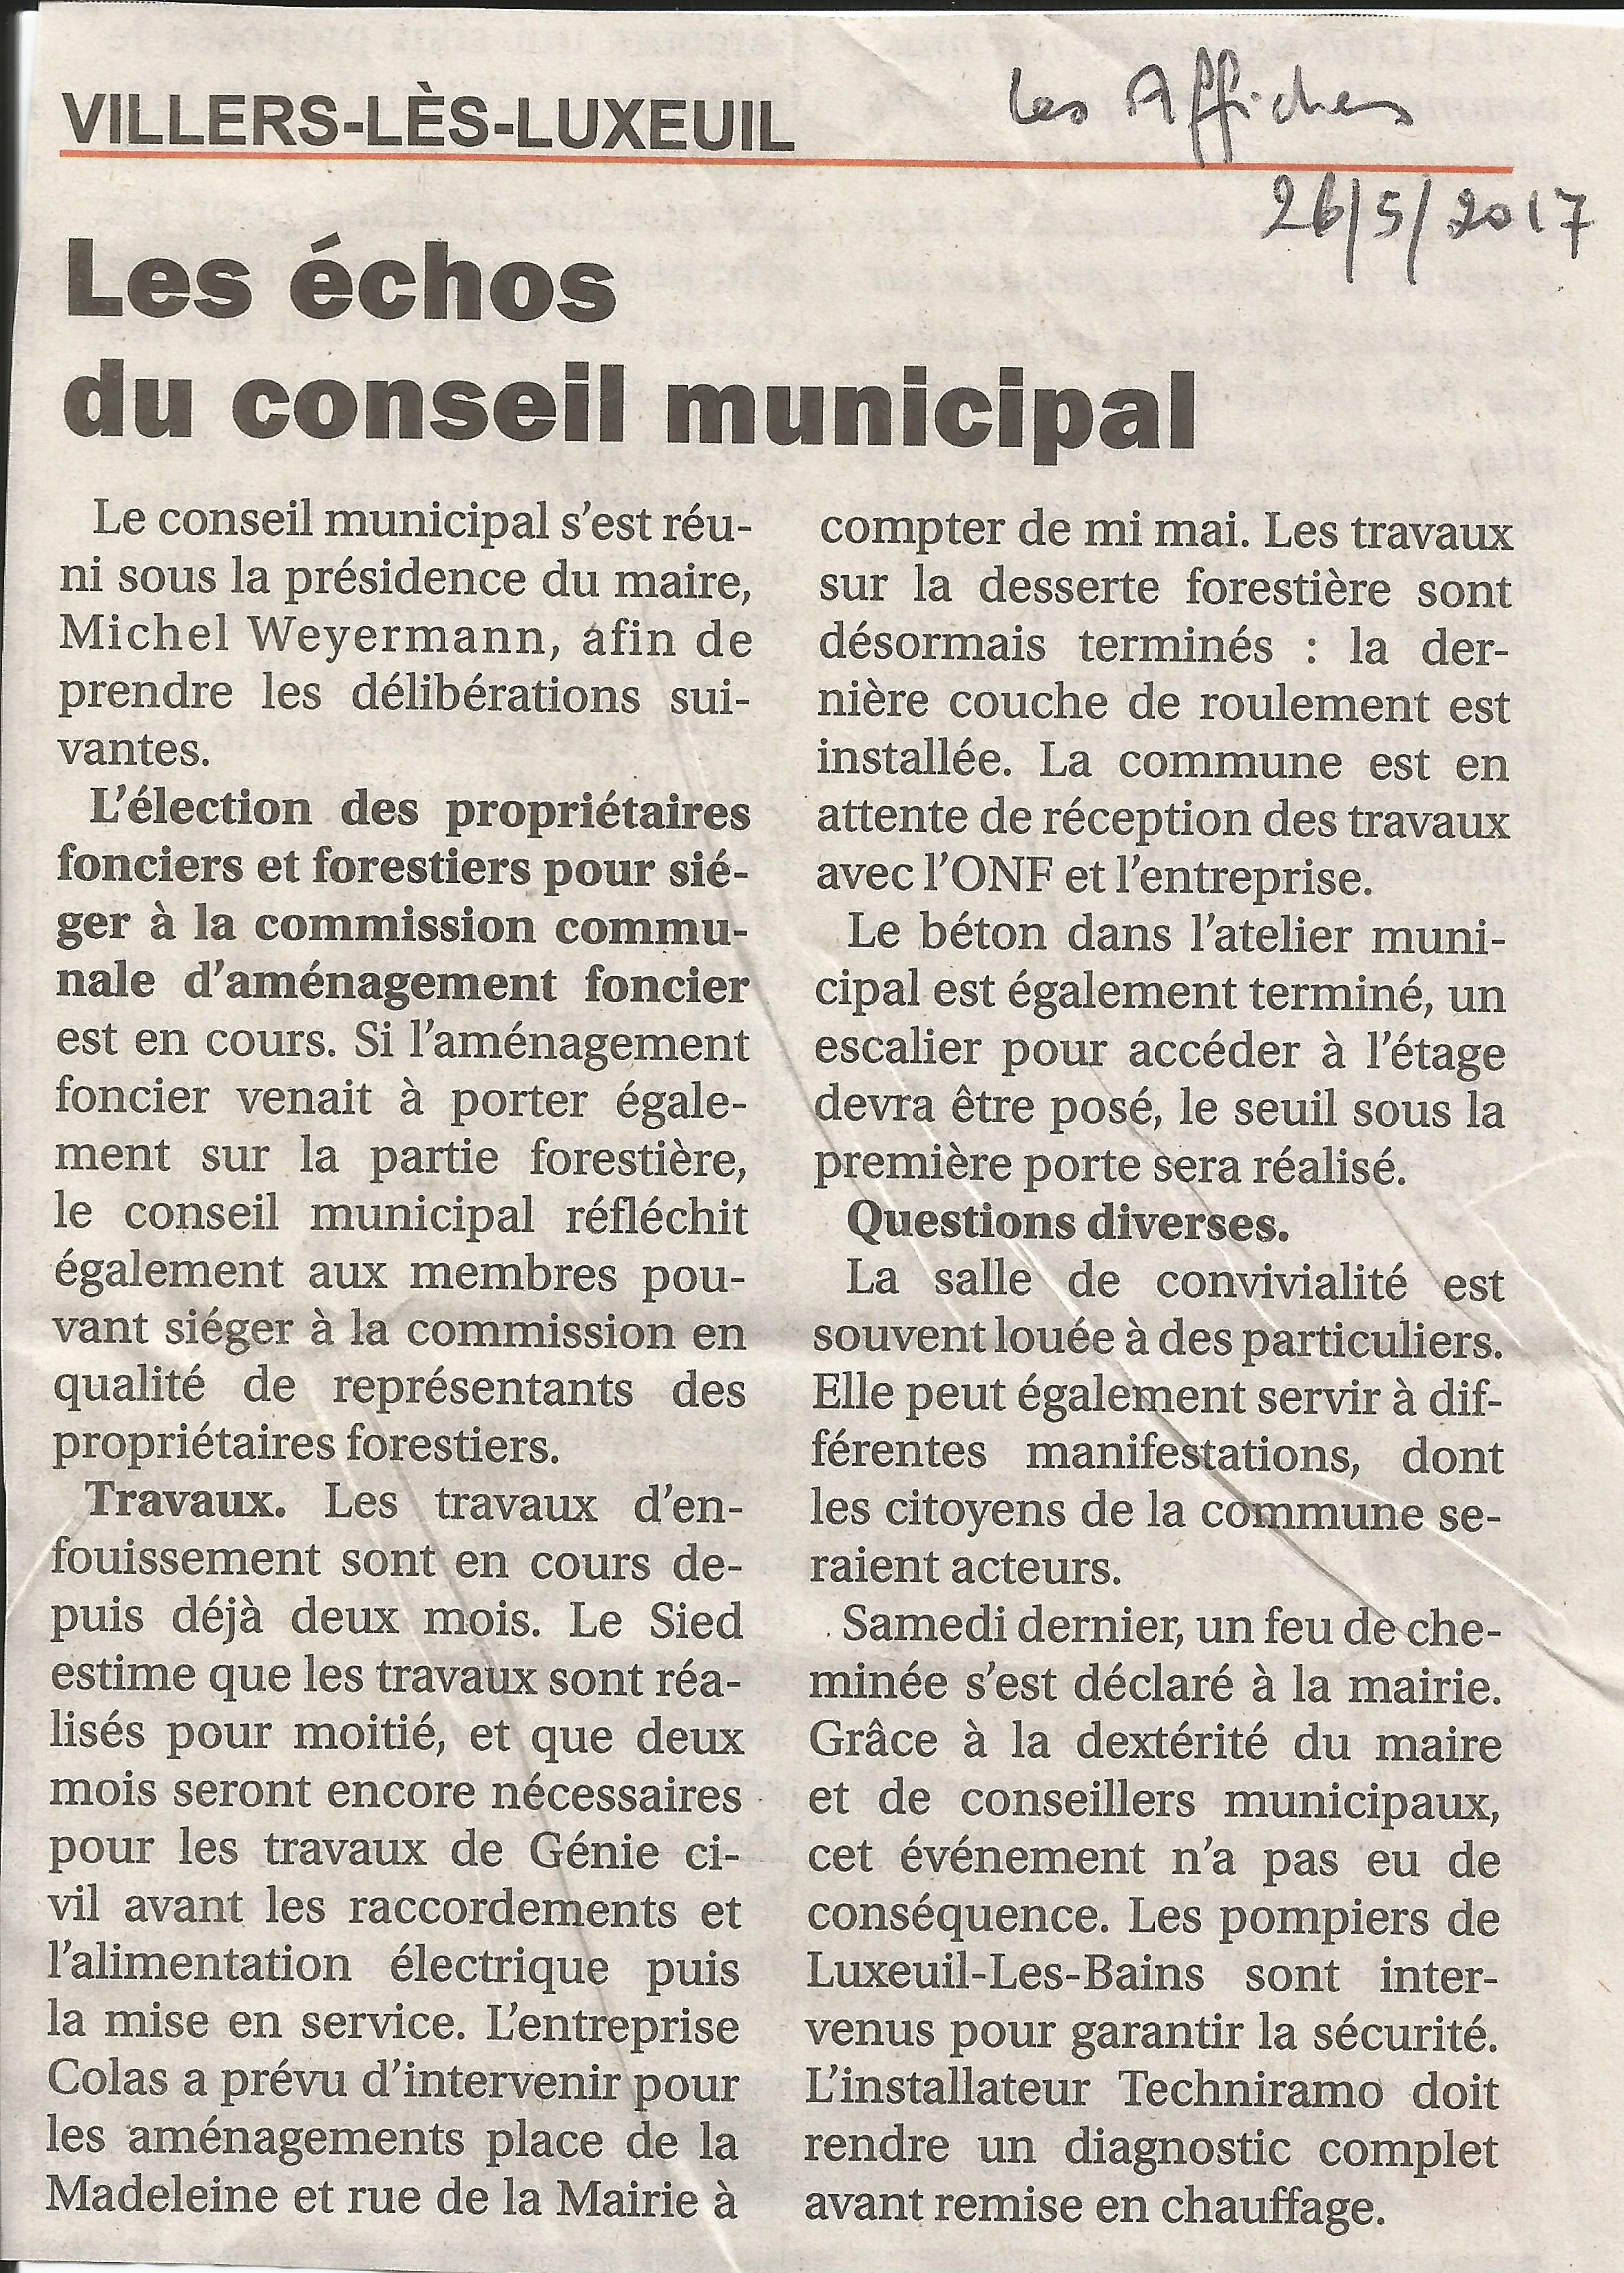 https://www.villers-les-luxeuil.com/projets/villers/files/images/2017_Mairie/Presse/2017_05_26.jpg